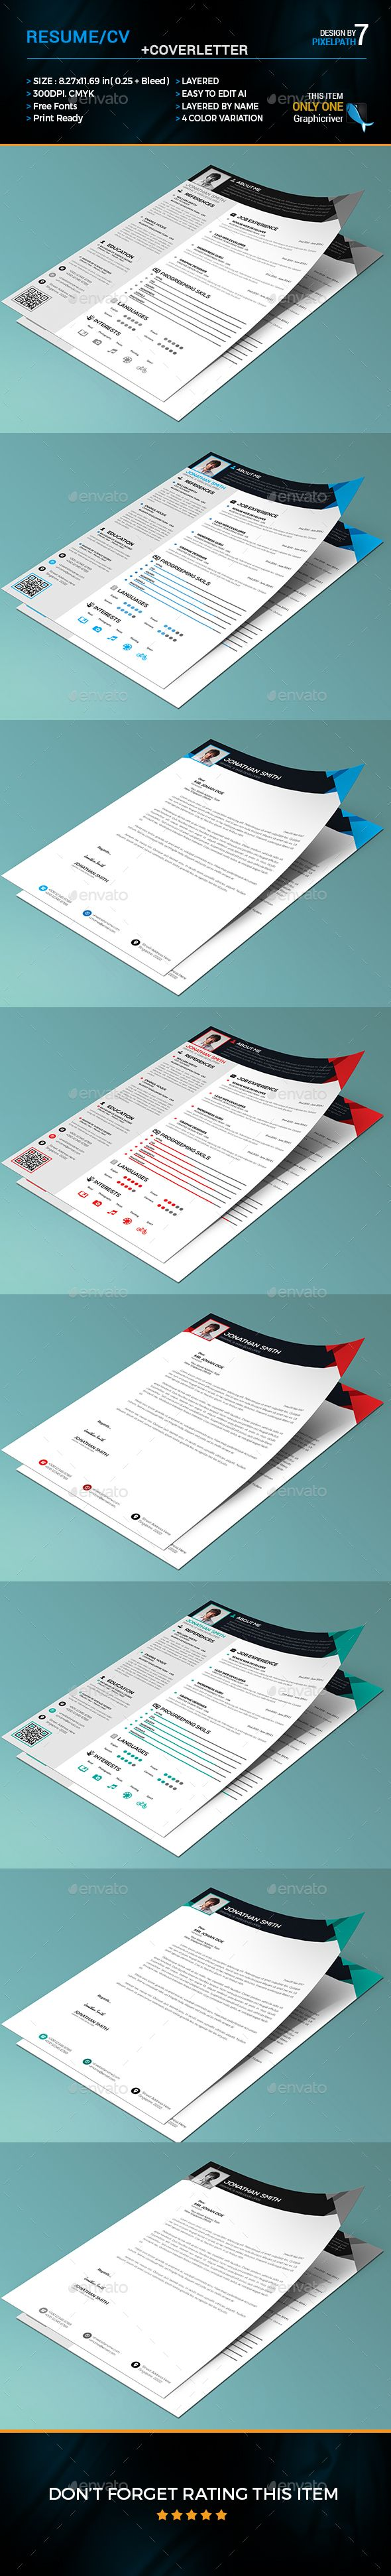 cv and covering letter%0A Resume   CV Cover Letter Template